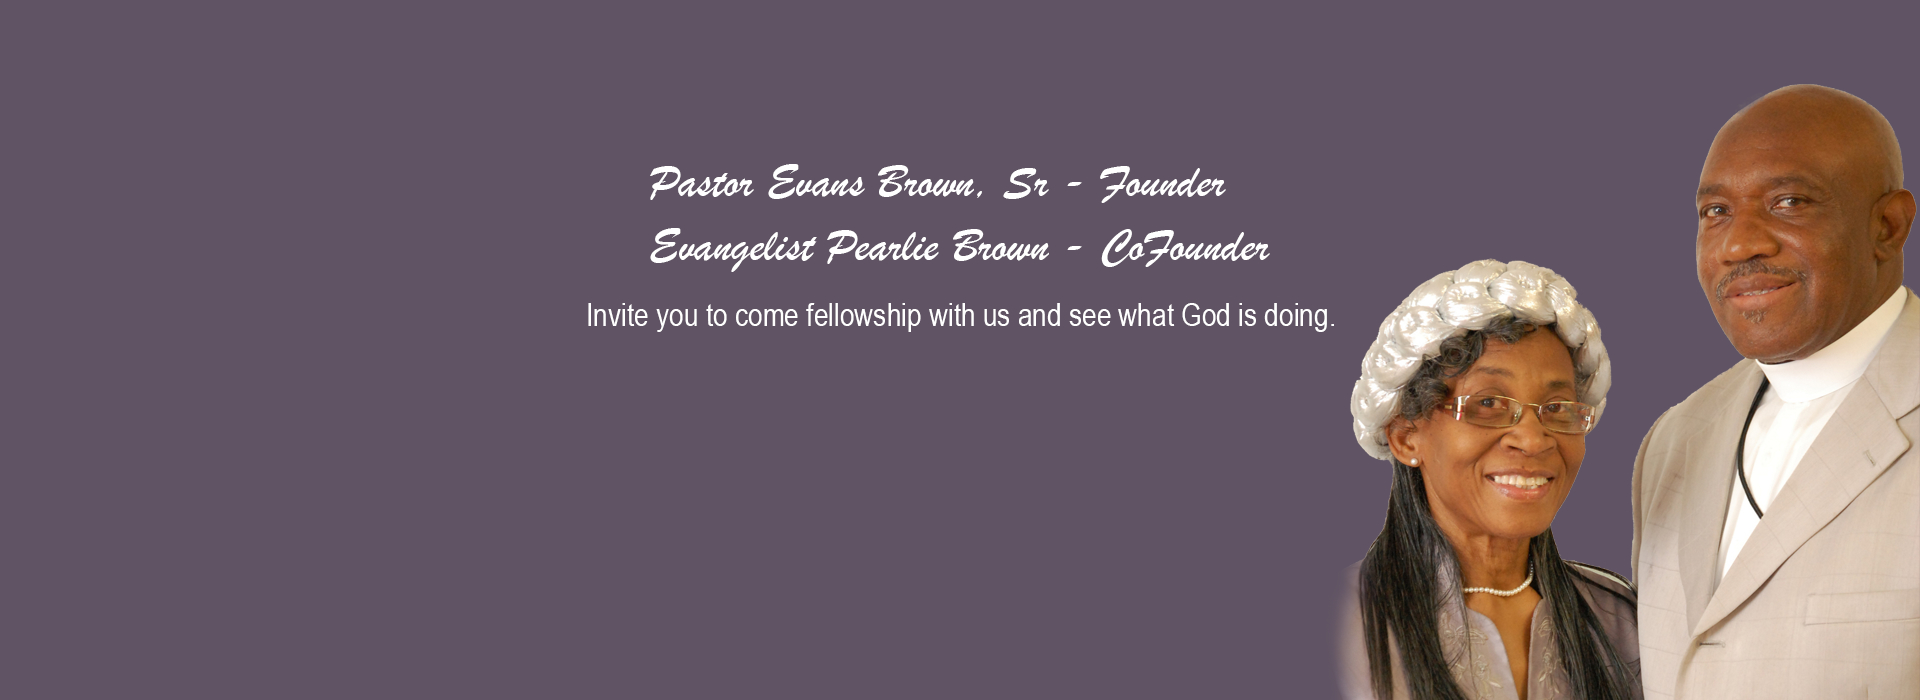 Pastor and First Lady-banner